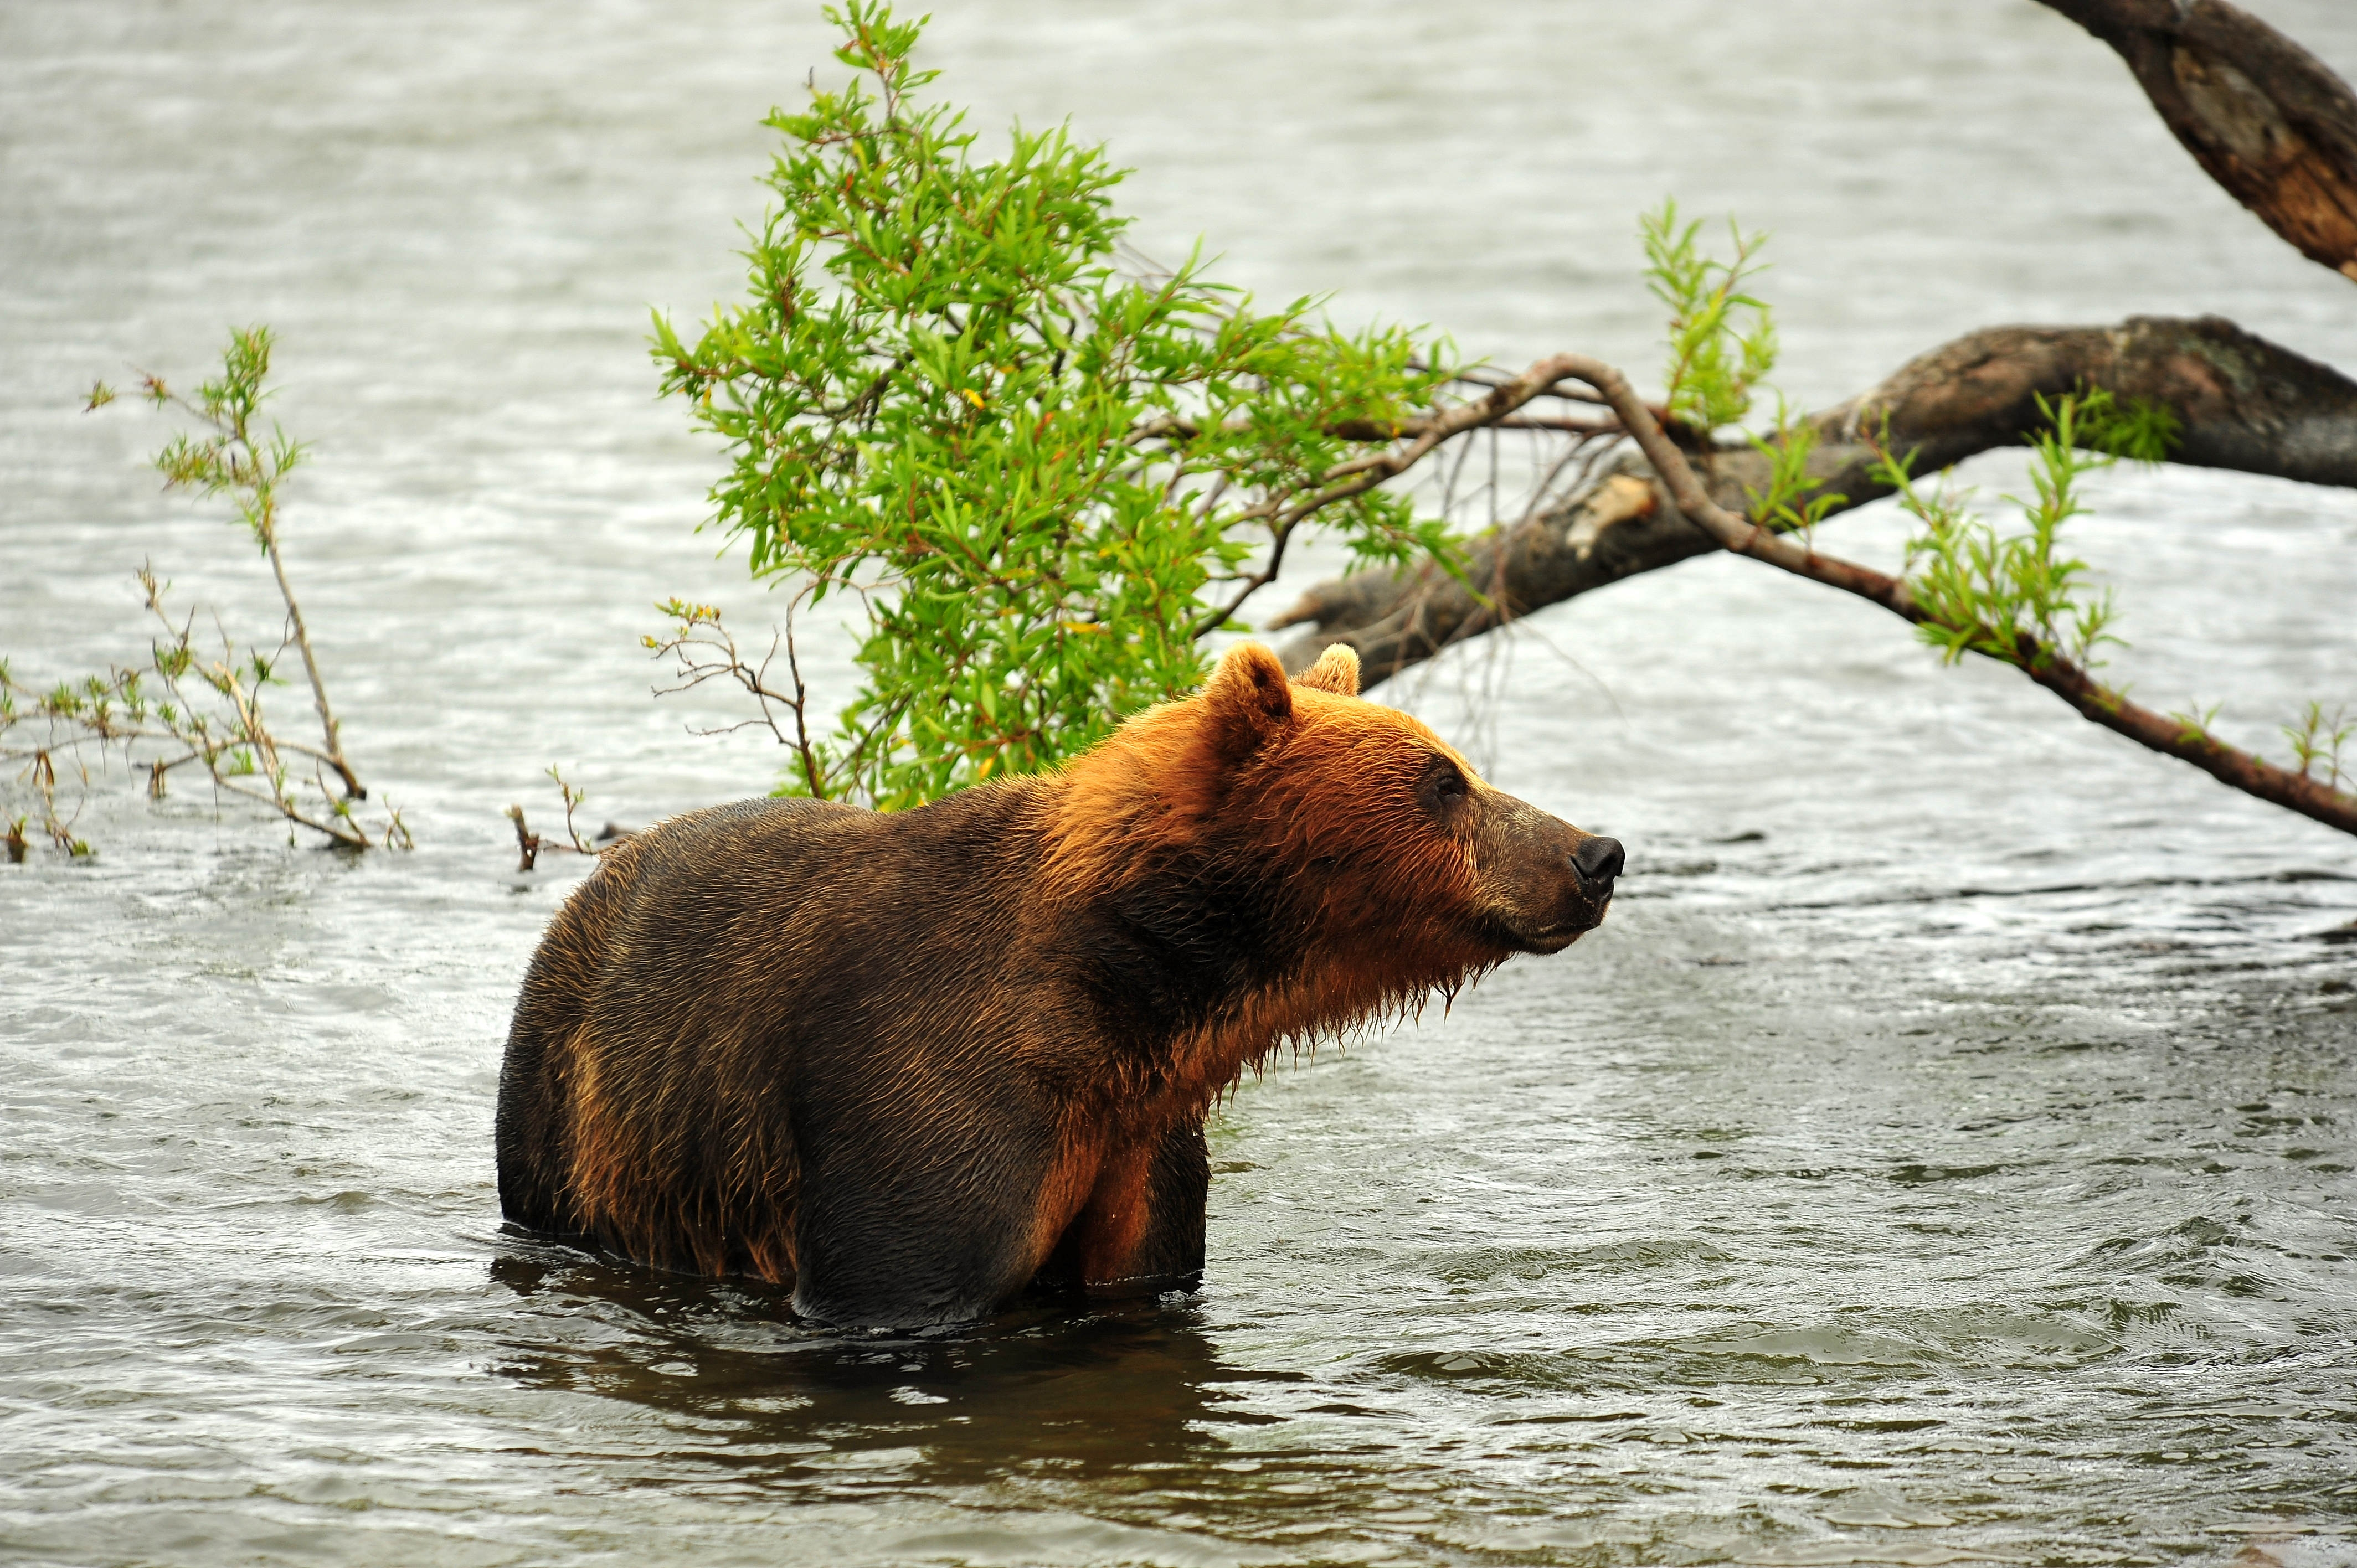 95476 download wallpaper Animals, Bear, Hunting, Hunt, Predator, Rivers screensavers and pictures for free